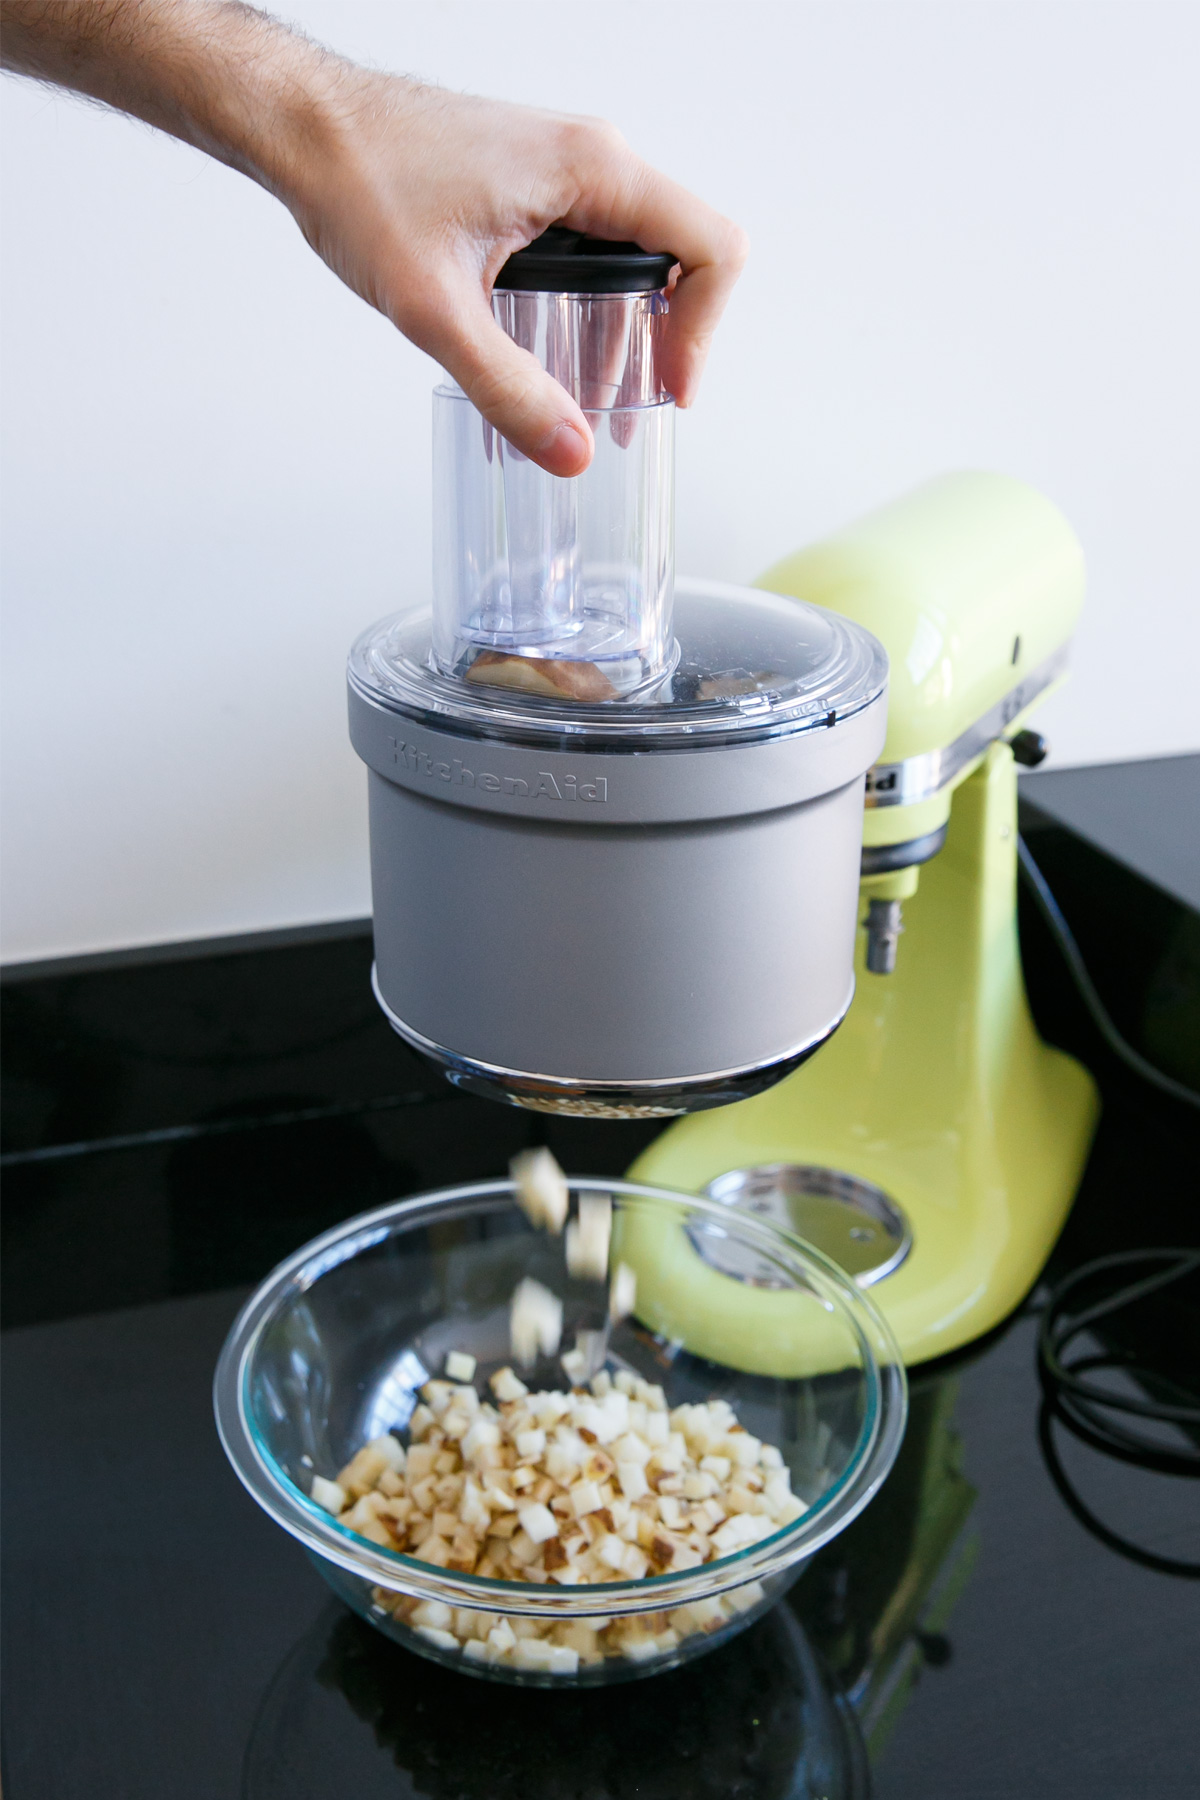 Shredding Cabbage With Kitchenaid Food Processor